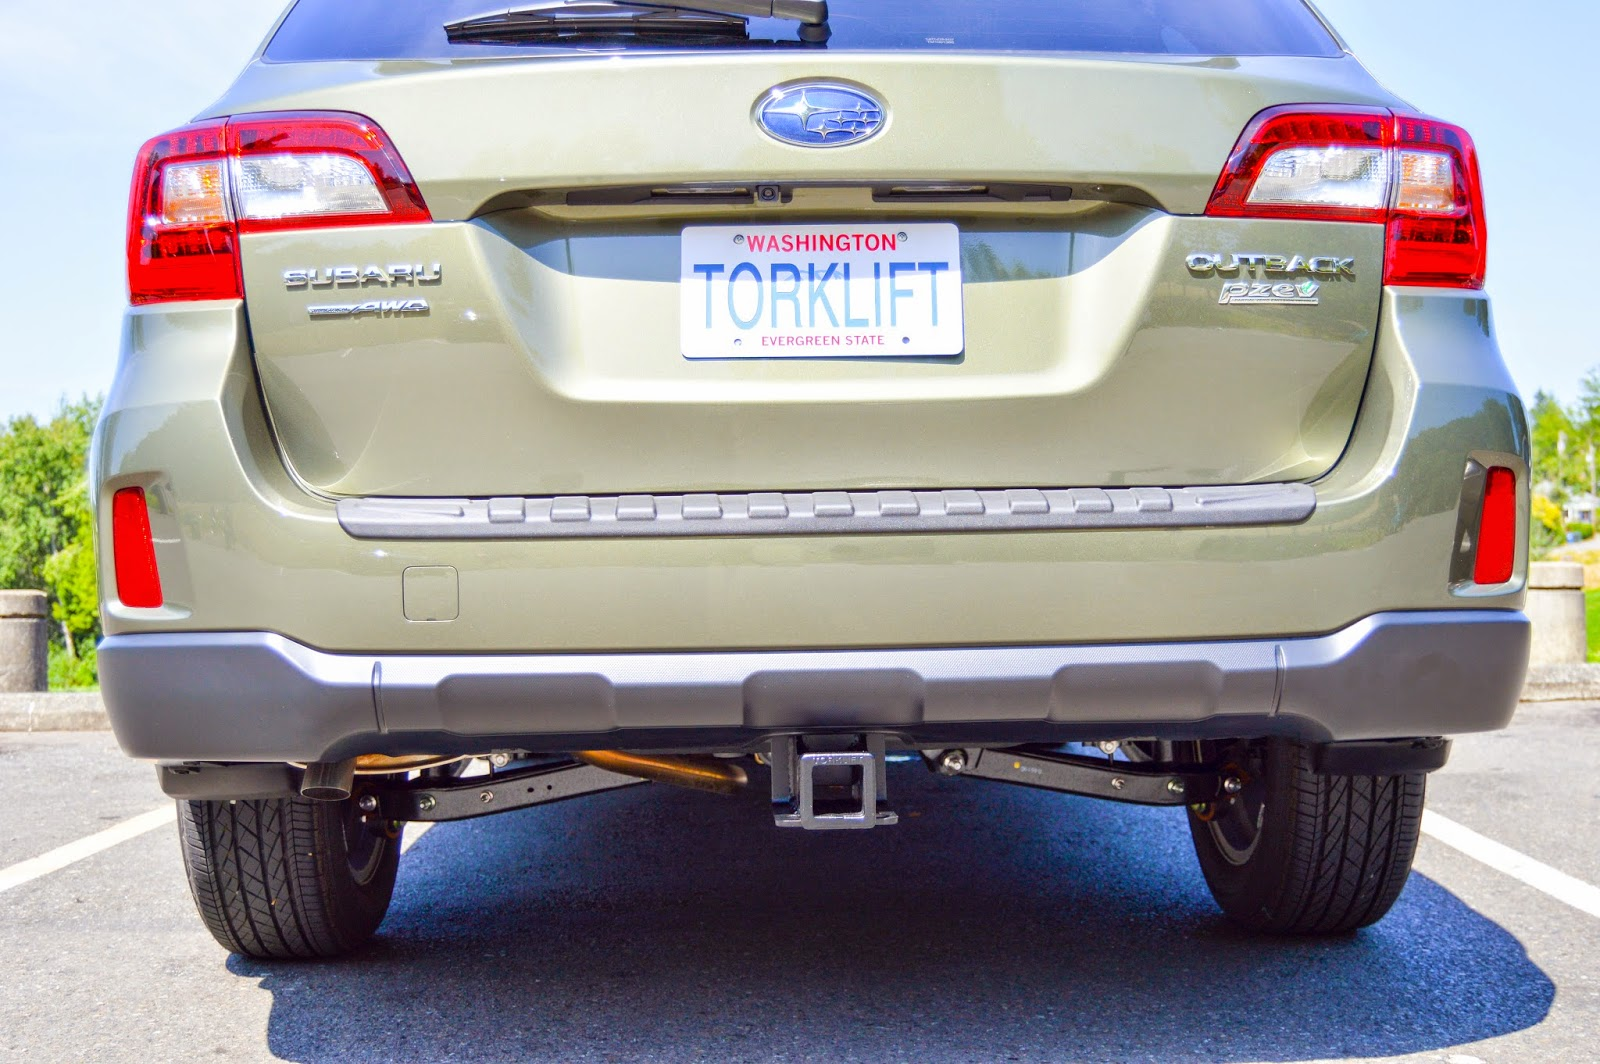 484240 Stehl Tow Dolly Dimensions Crafts as well 111202 in addition Th9043 moreover Subaru Outback Turbo in addition 2017 Kia Soul Colors. on subaru forester trailer hitch